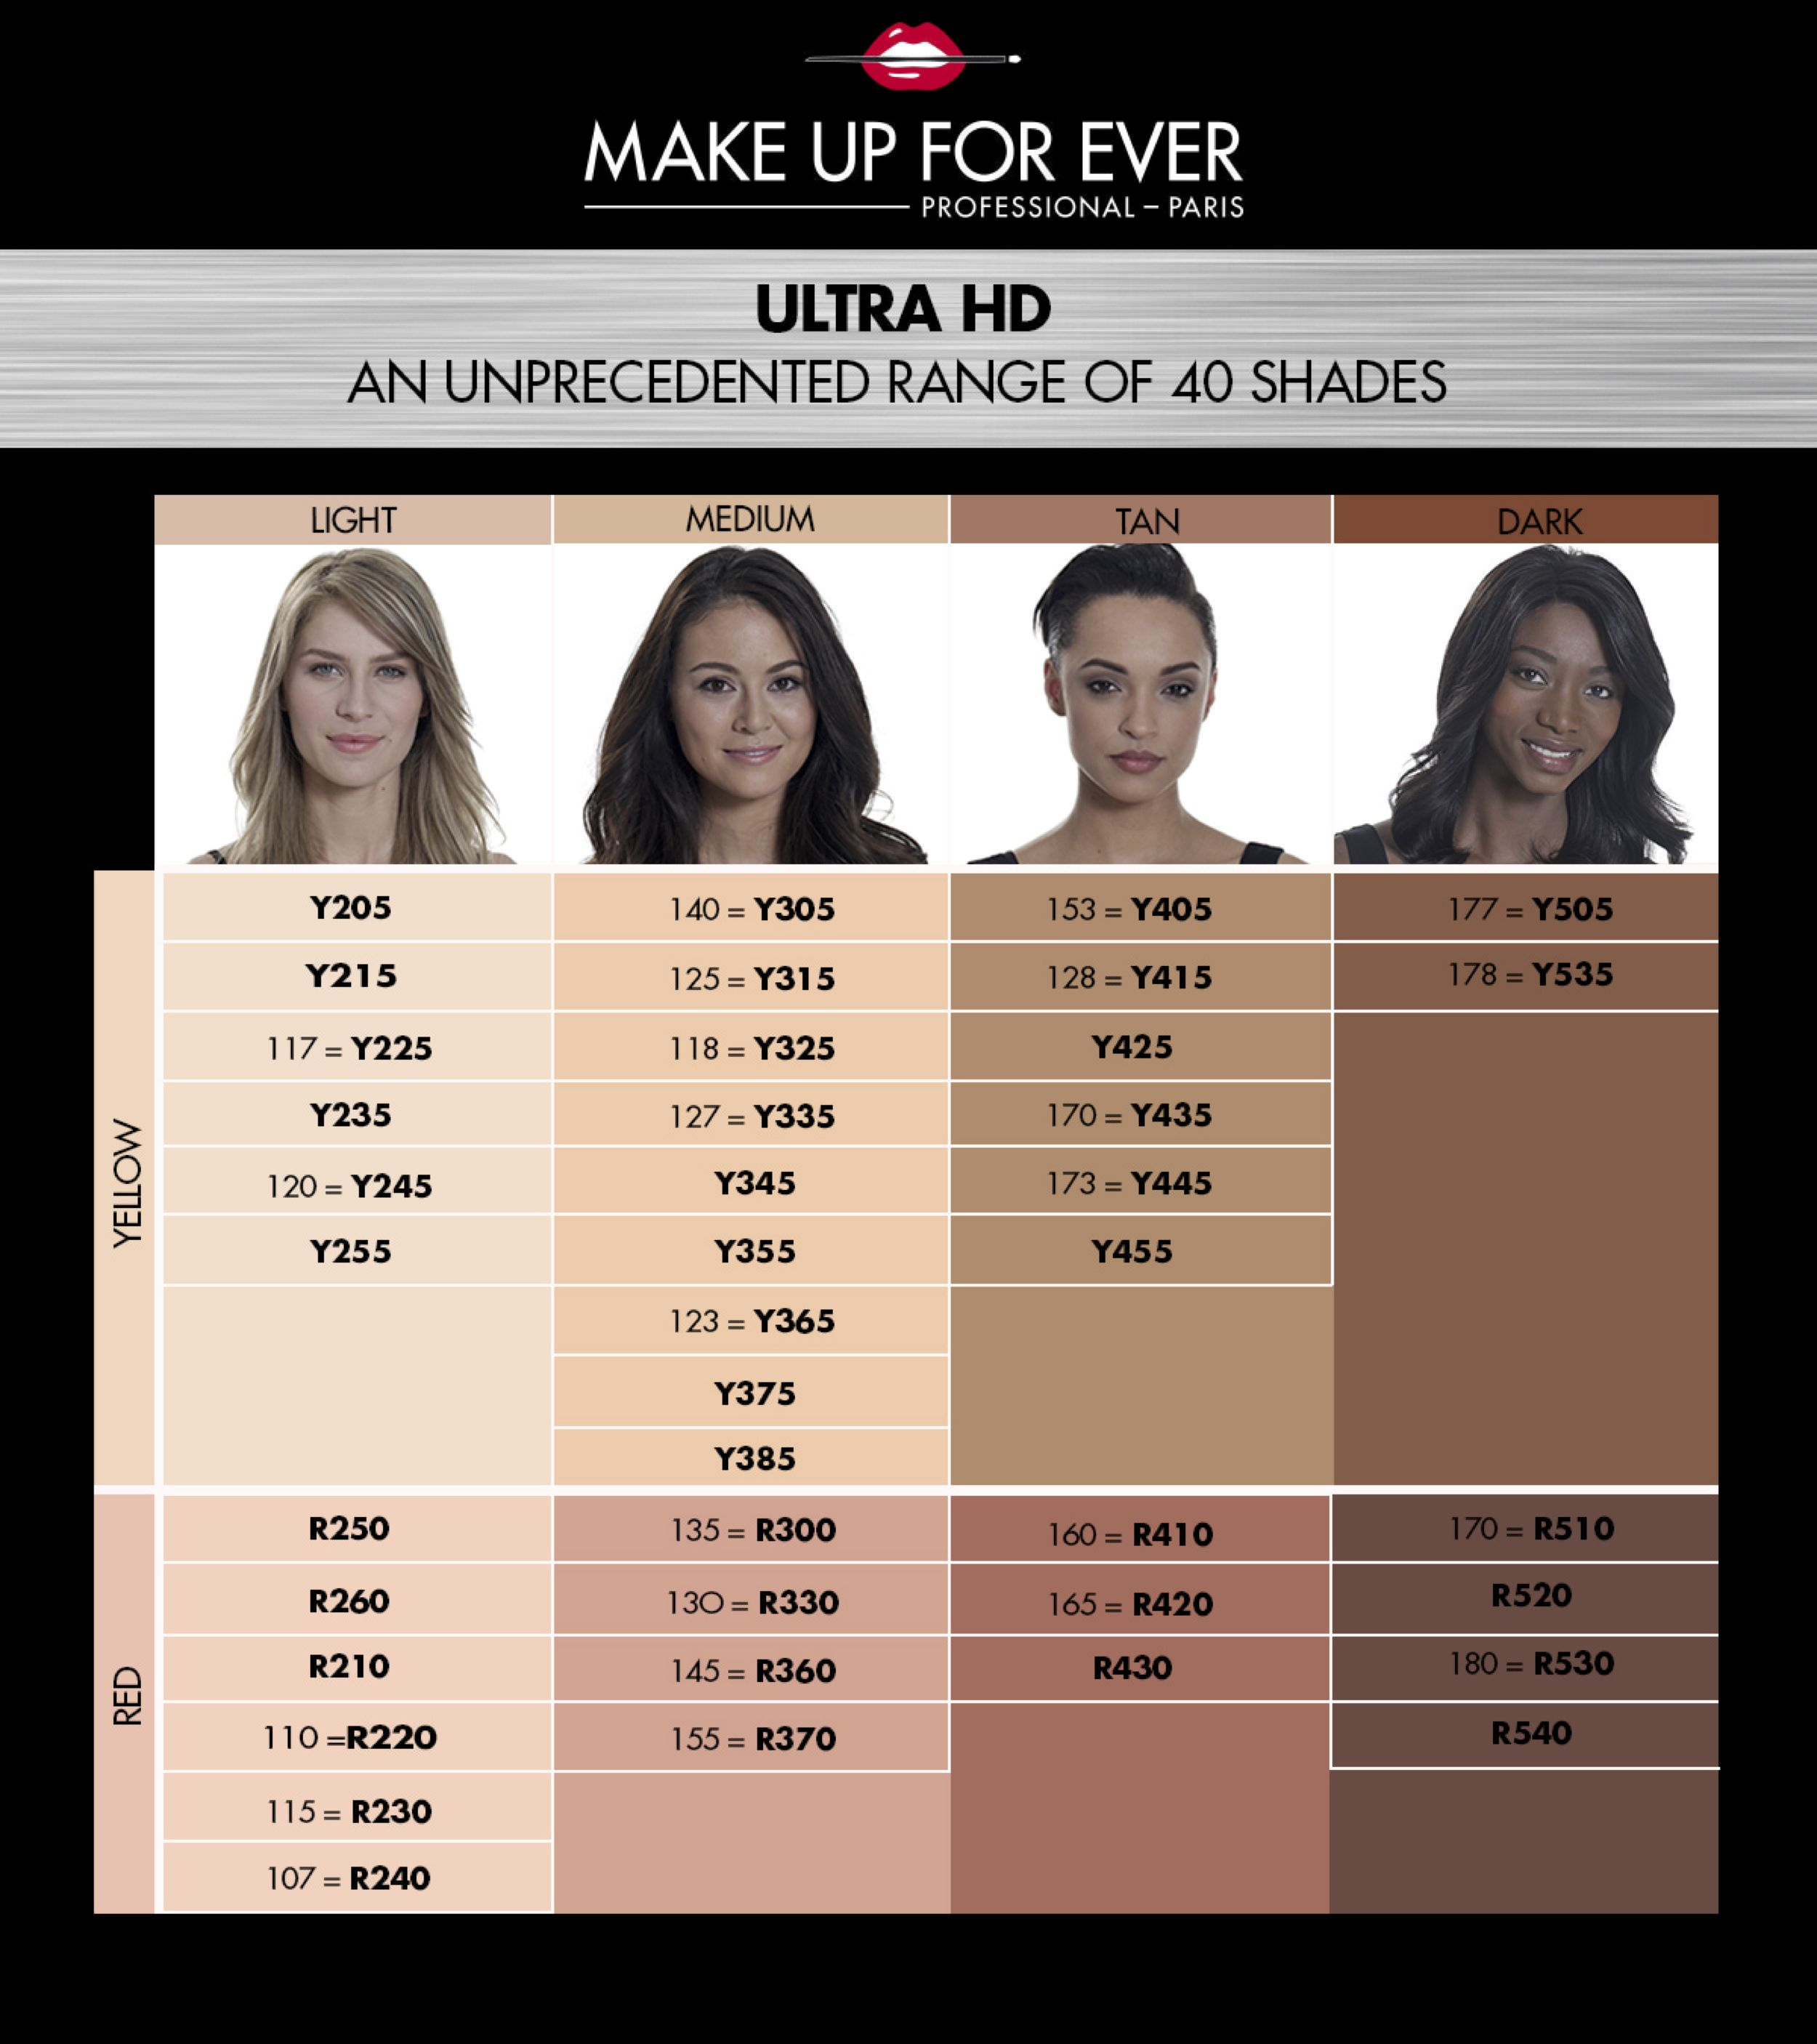 Make Up For Ever Ultra HD Foundation Color Guide Makeup